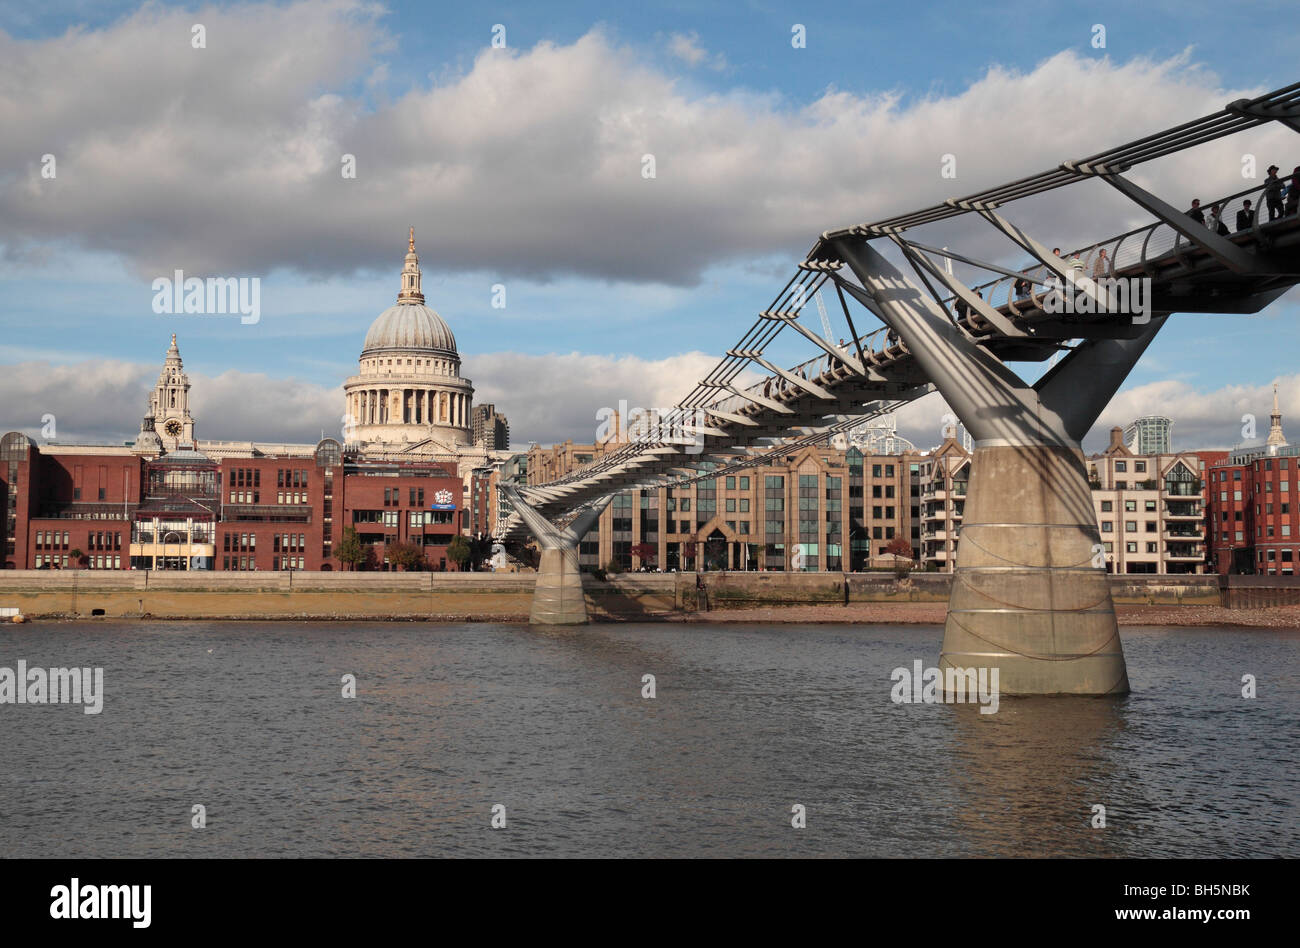 View from the South Bank of the River Thames towards the Millennium Bridge and St Pauls Cathedral, London, UK. Stock Photo